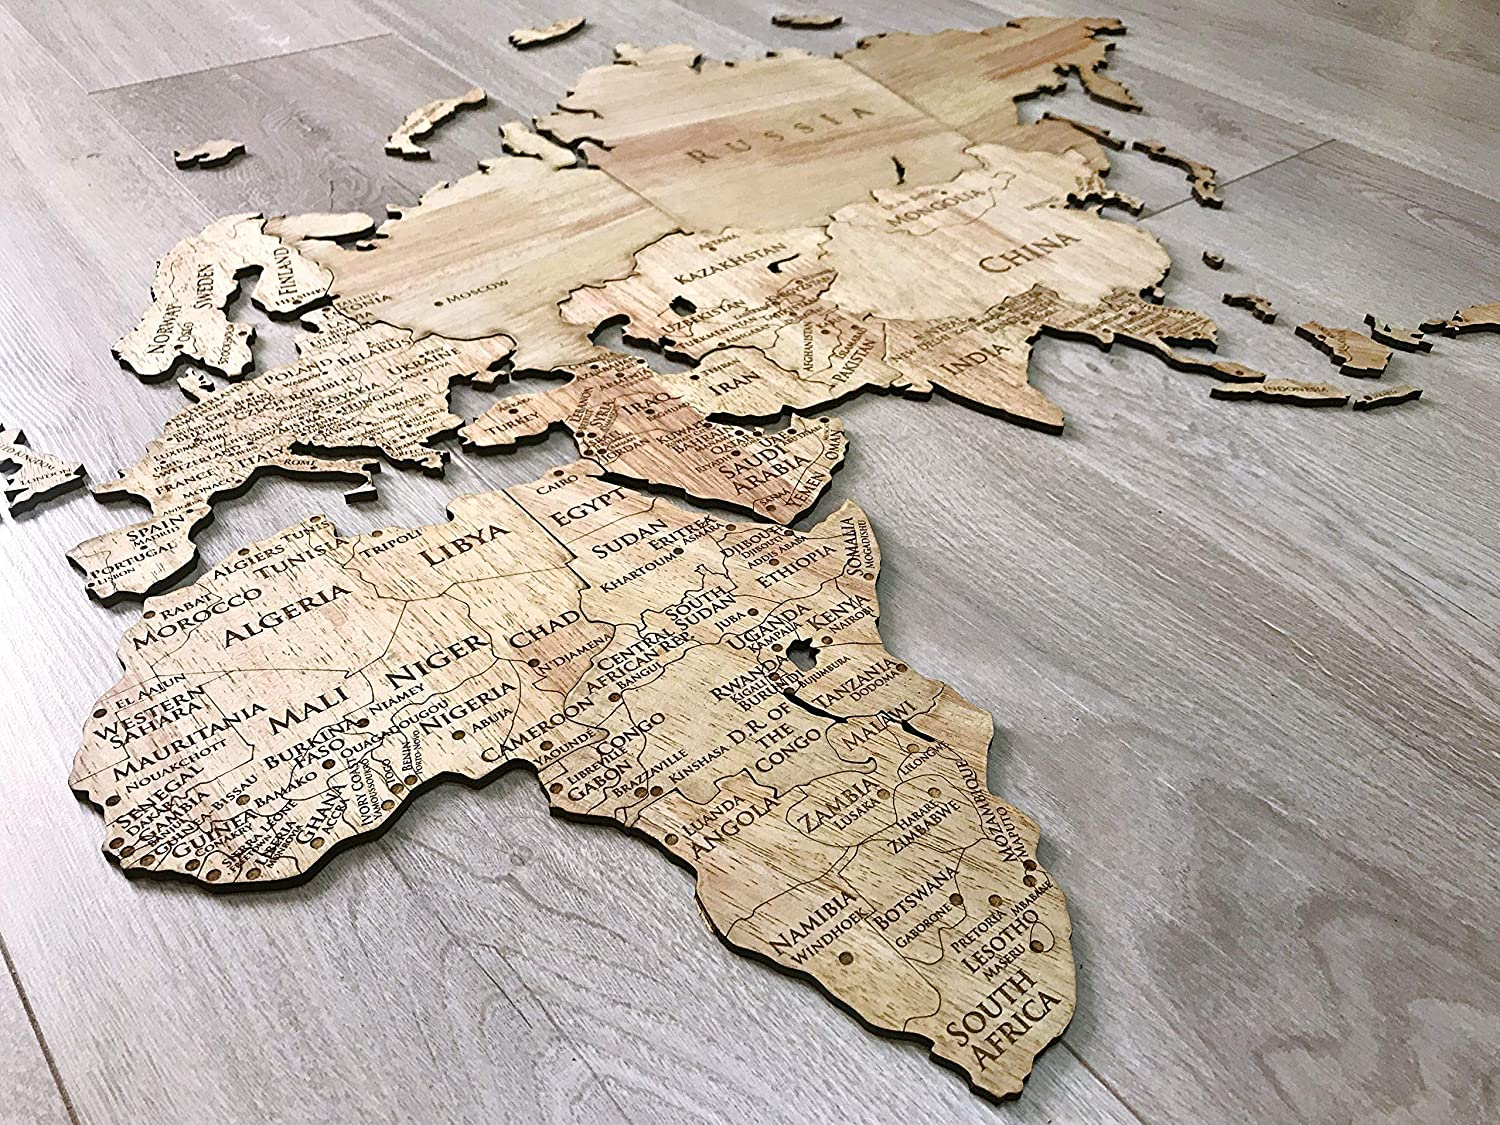 customized engraving home decor accessories gift wooden travel map present World map rustic house decoration Unik4art Wooden World map wall decor